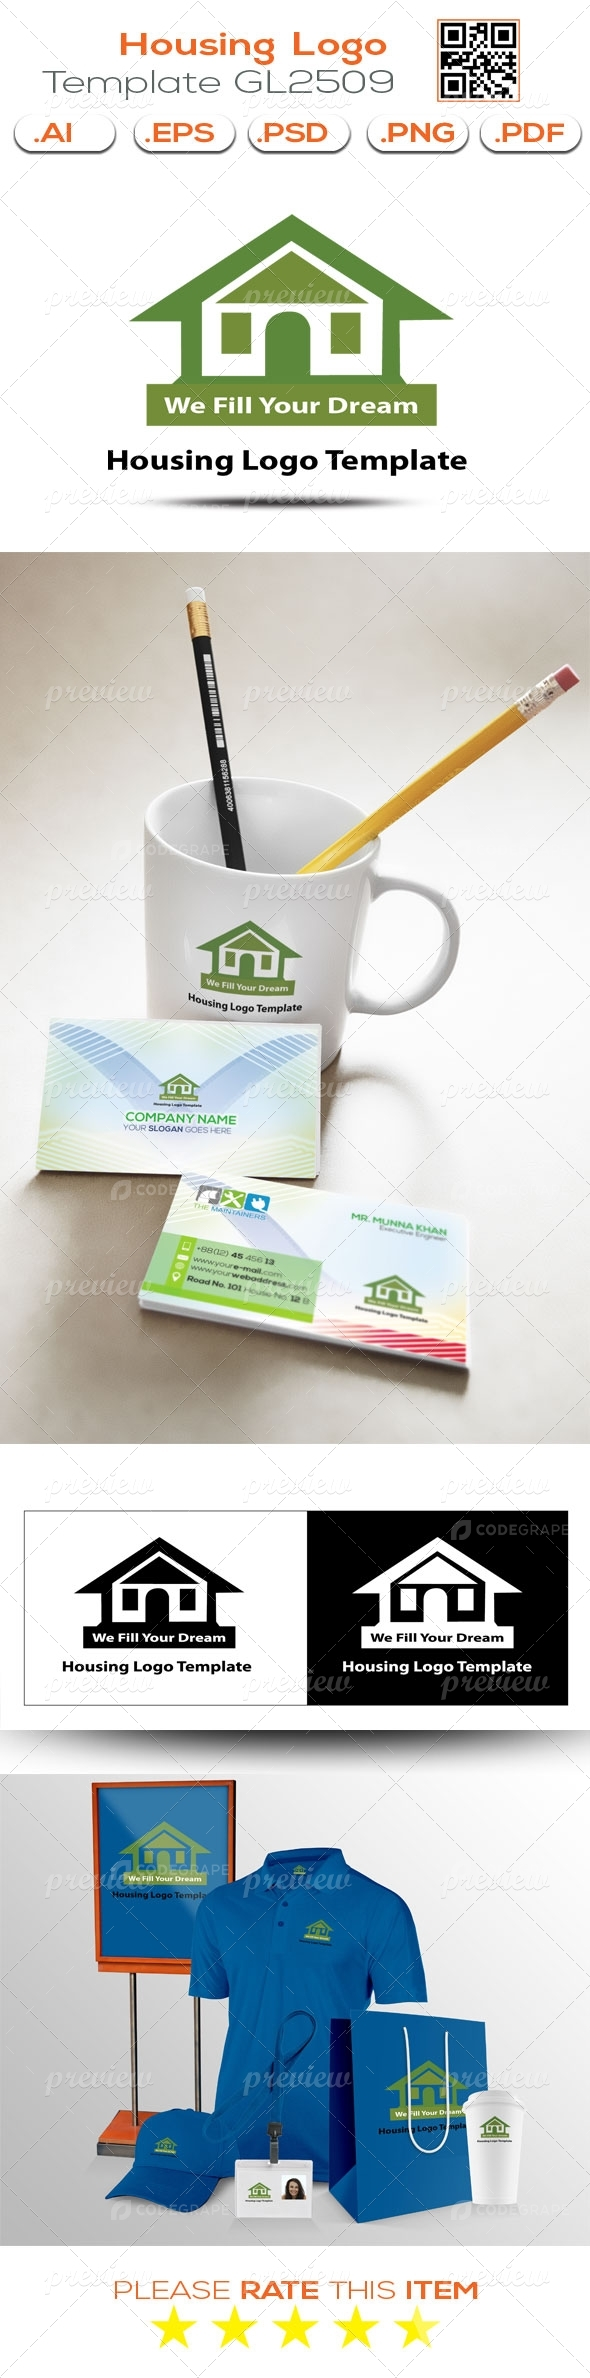 Housing Logo Template GL2509